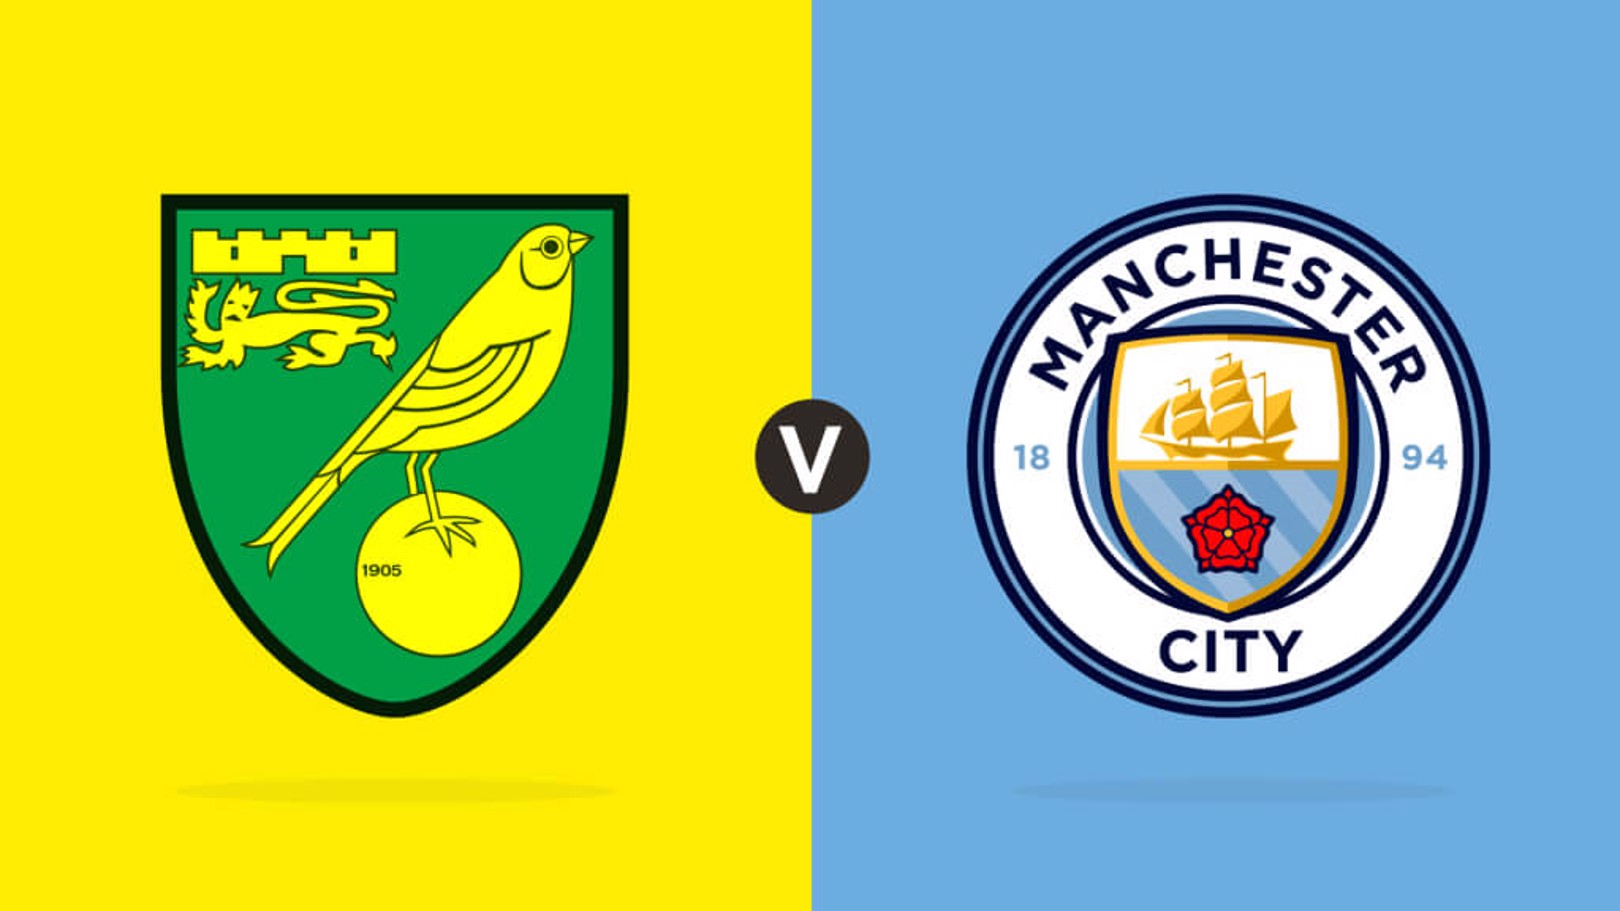 Norwich v Man City: Match details and player stats